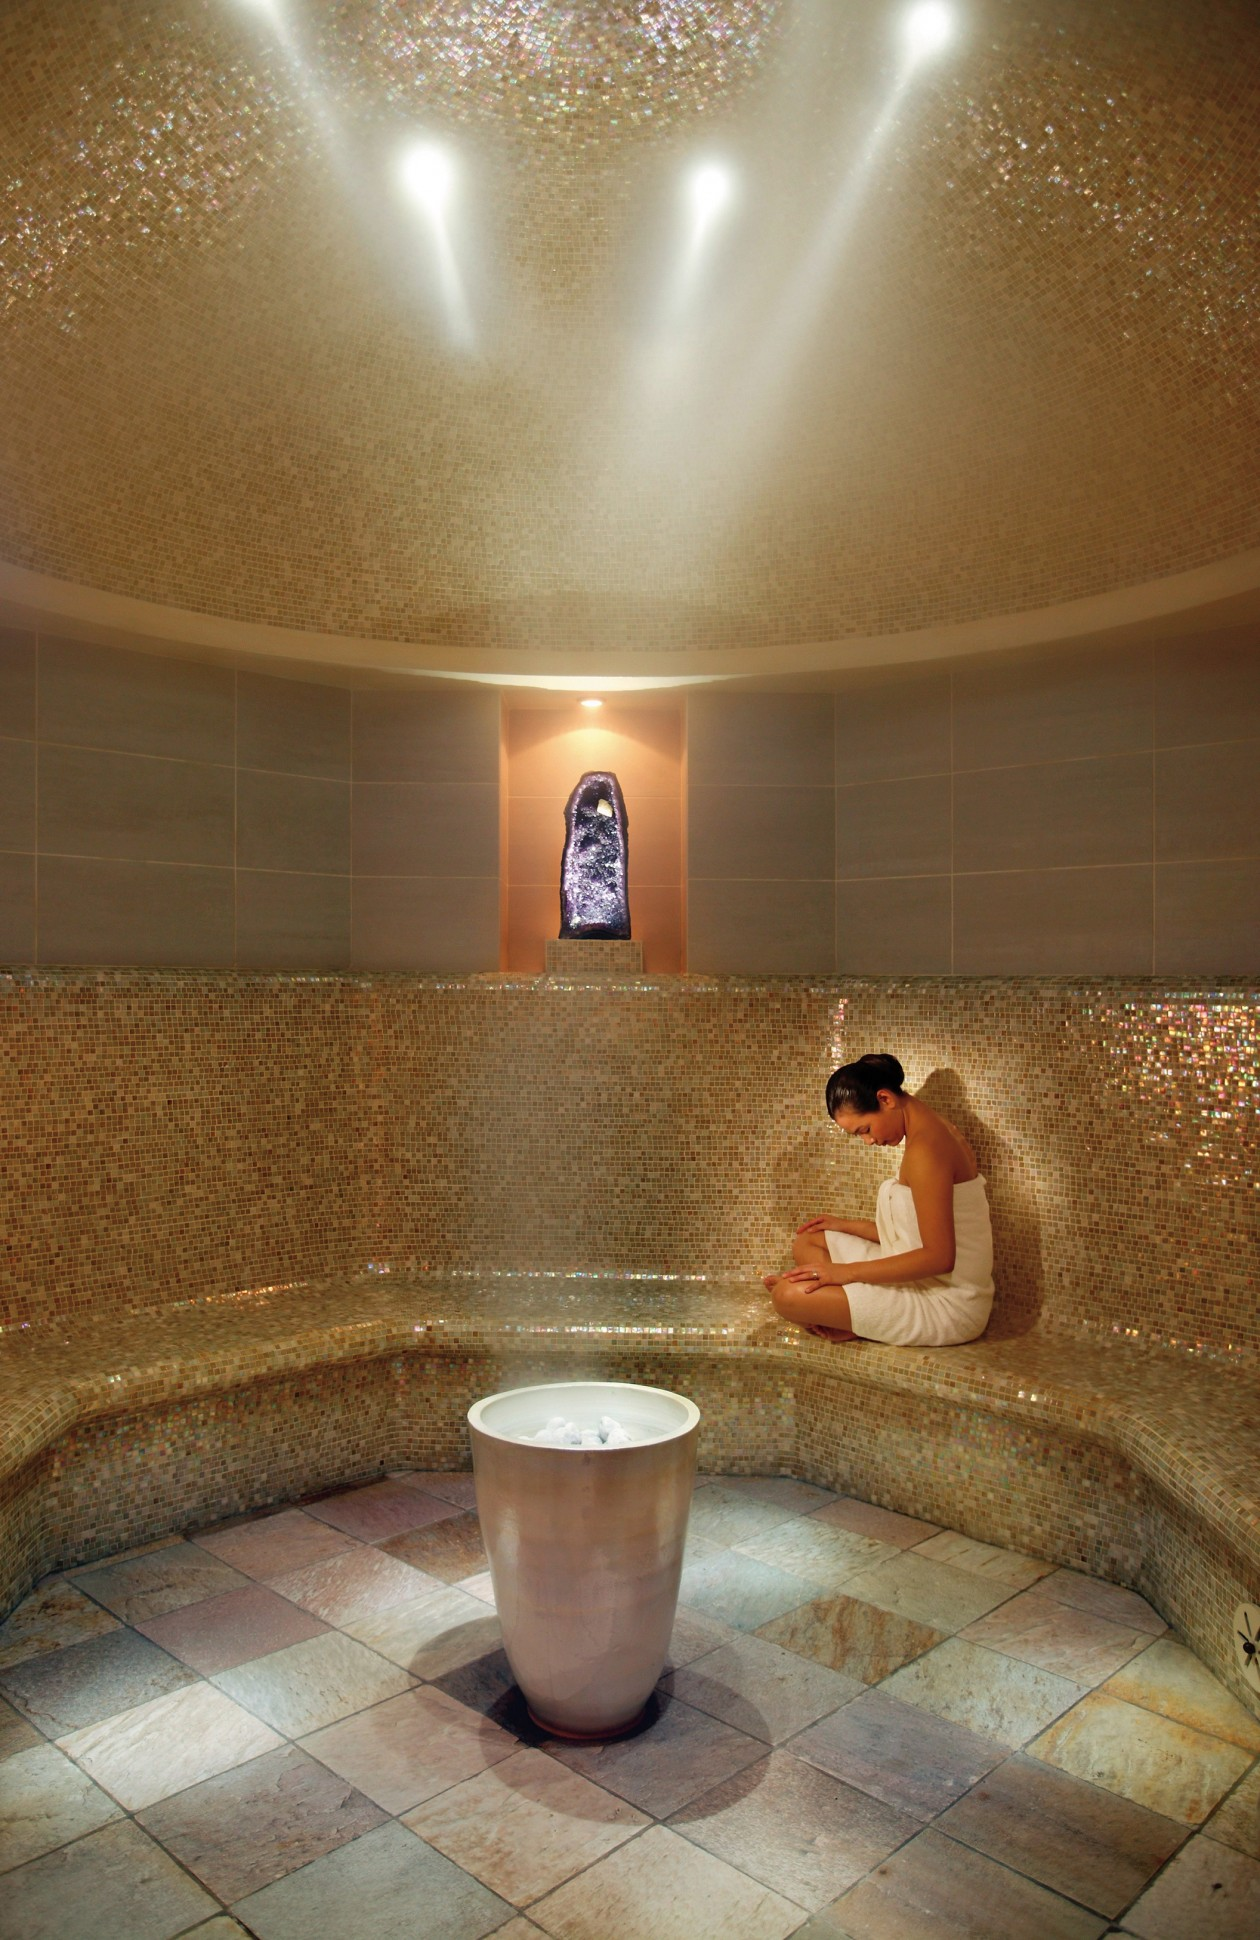 The sleek steam room